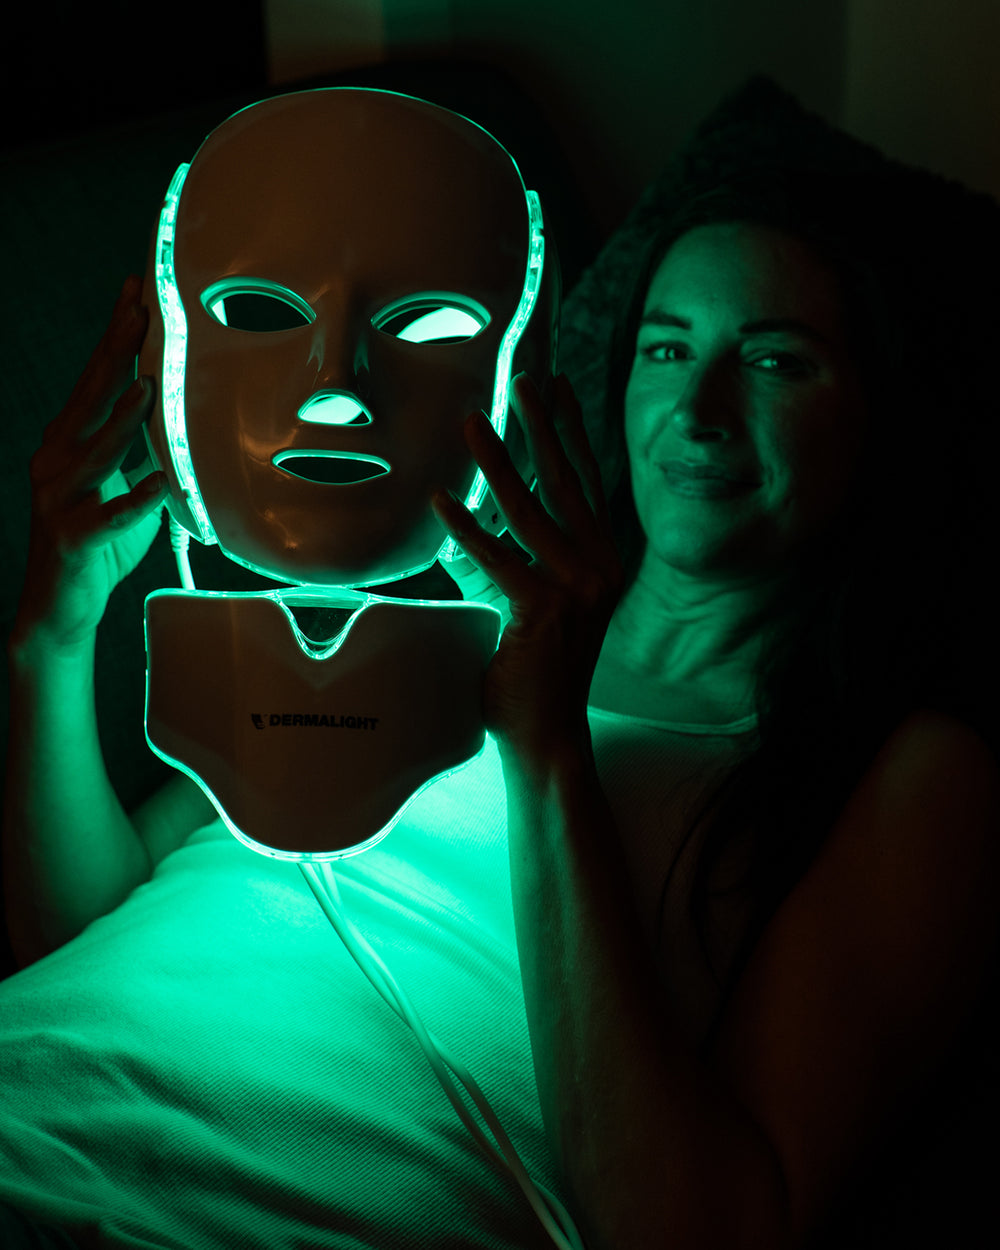 Derma-Light-Mask-LED-Green-Light-Therapy-Dermalight